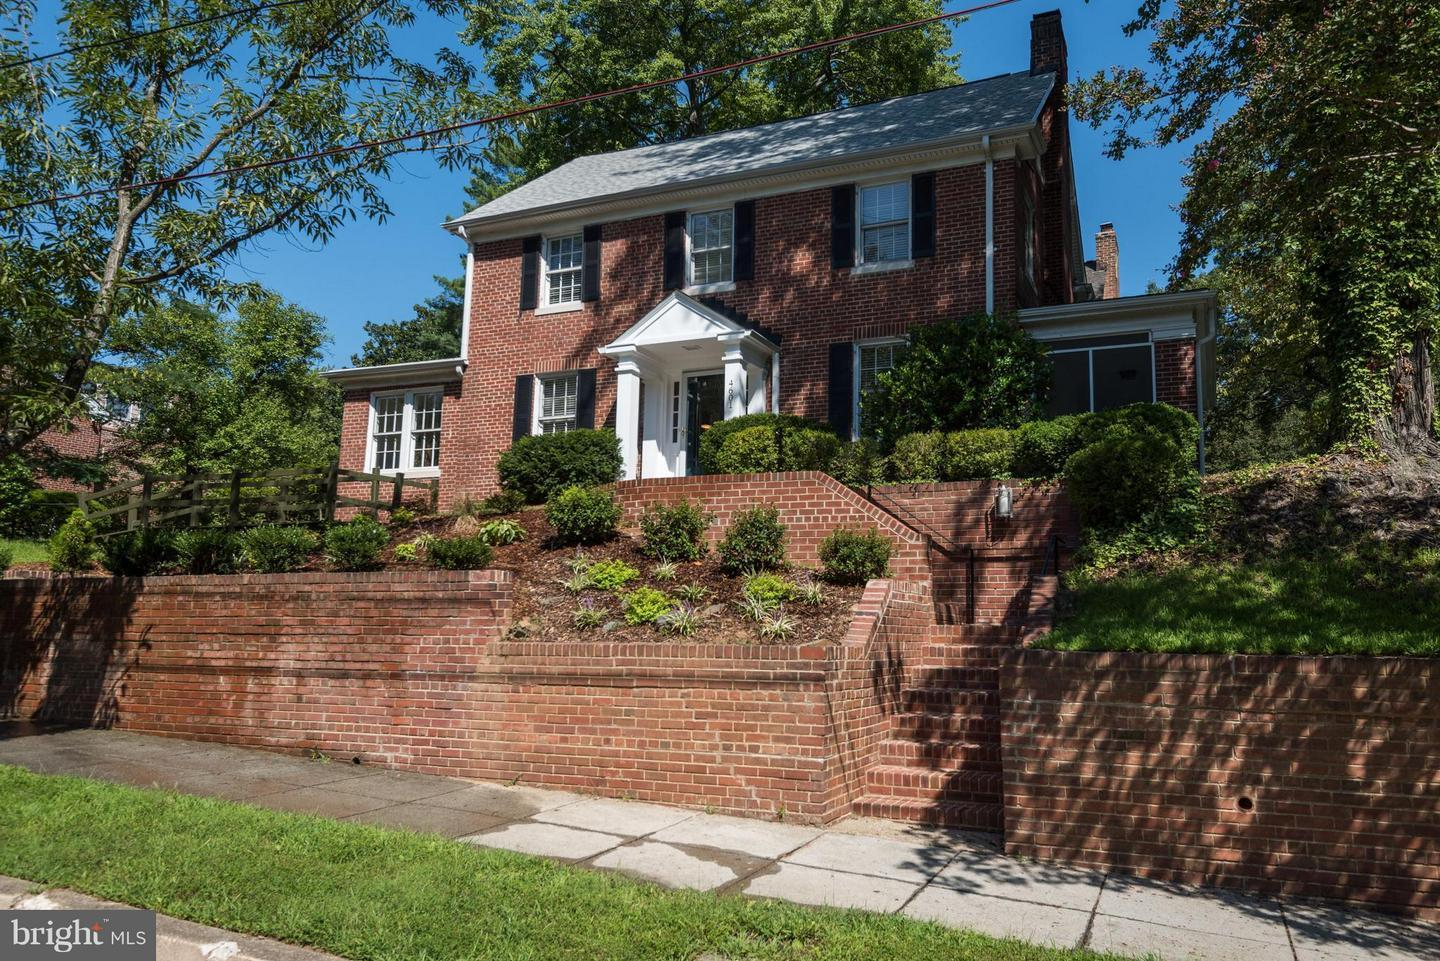 Local Real Estate: Homes for Sale — AU Park - Friendship Heights ...